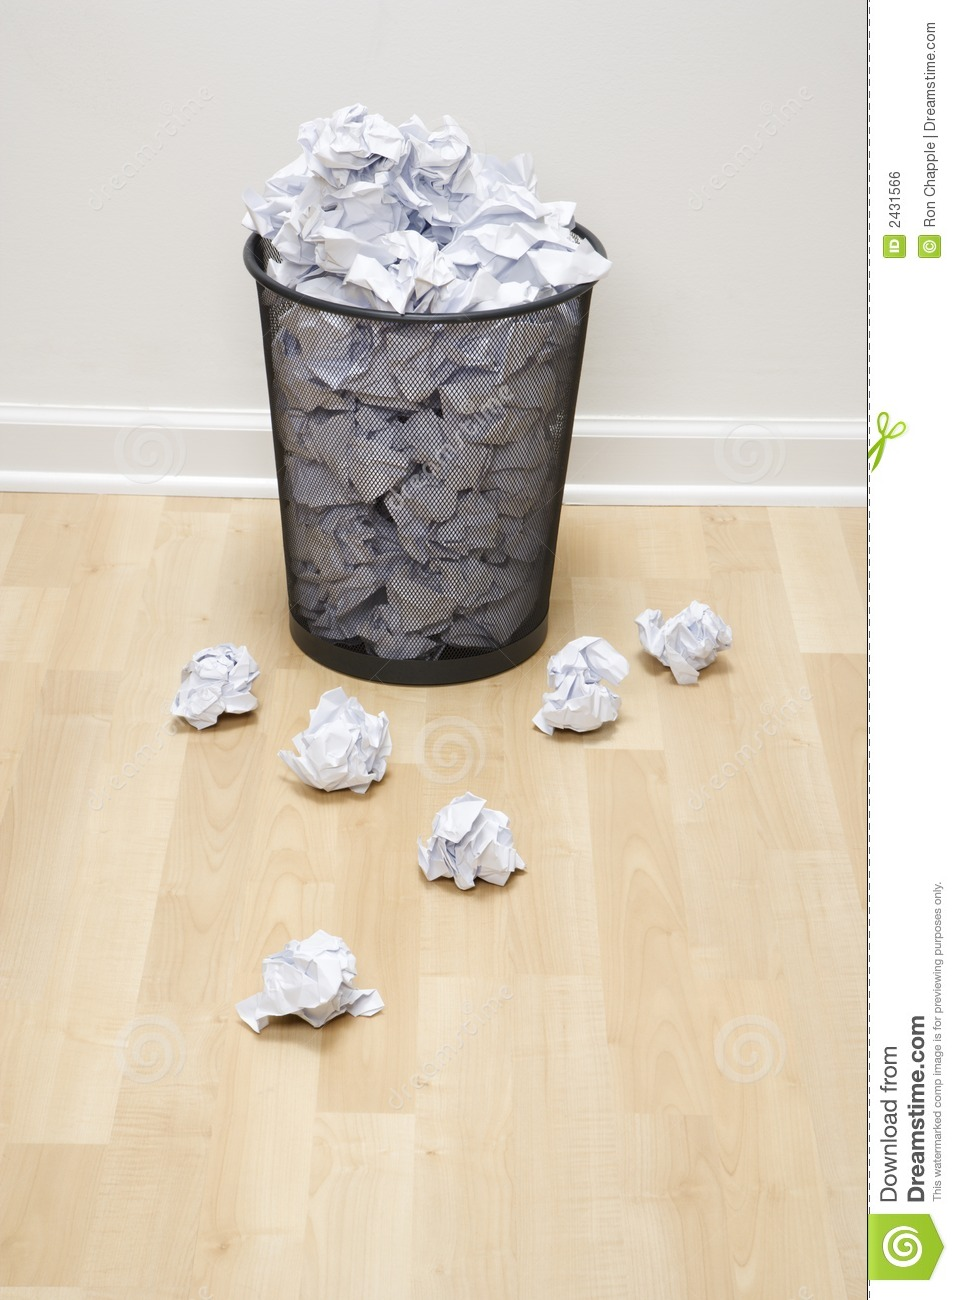 trash can and paper  stock photo  image of 070119j0708